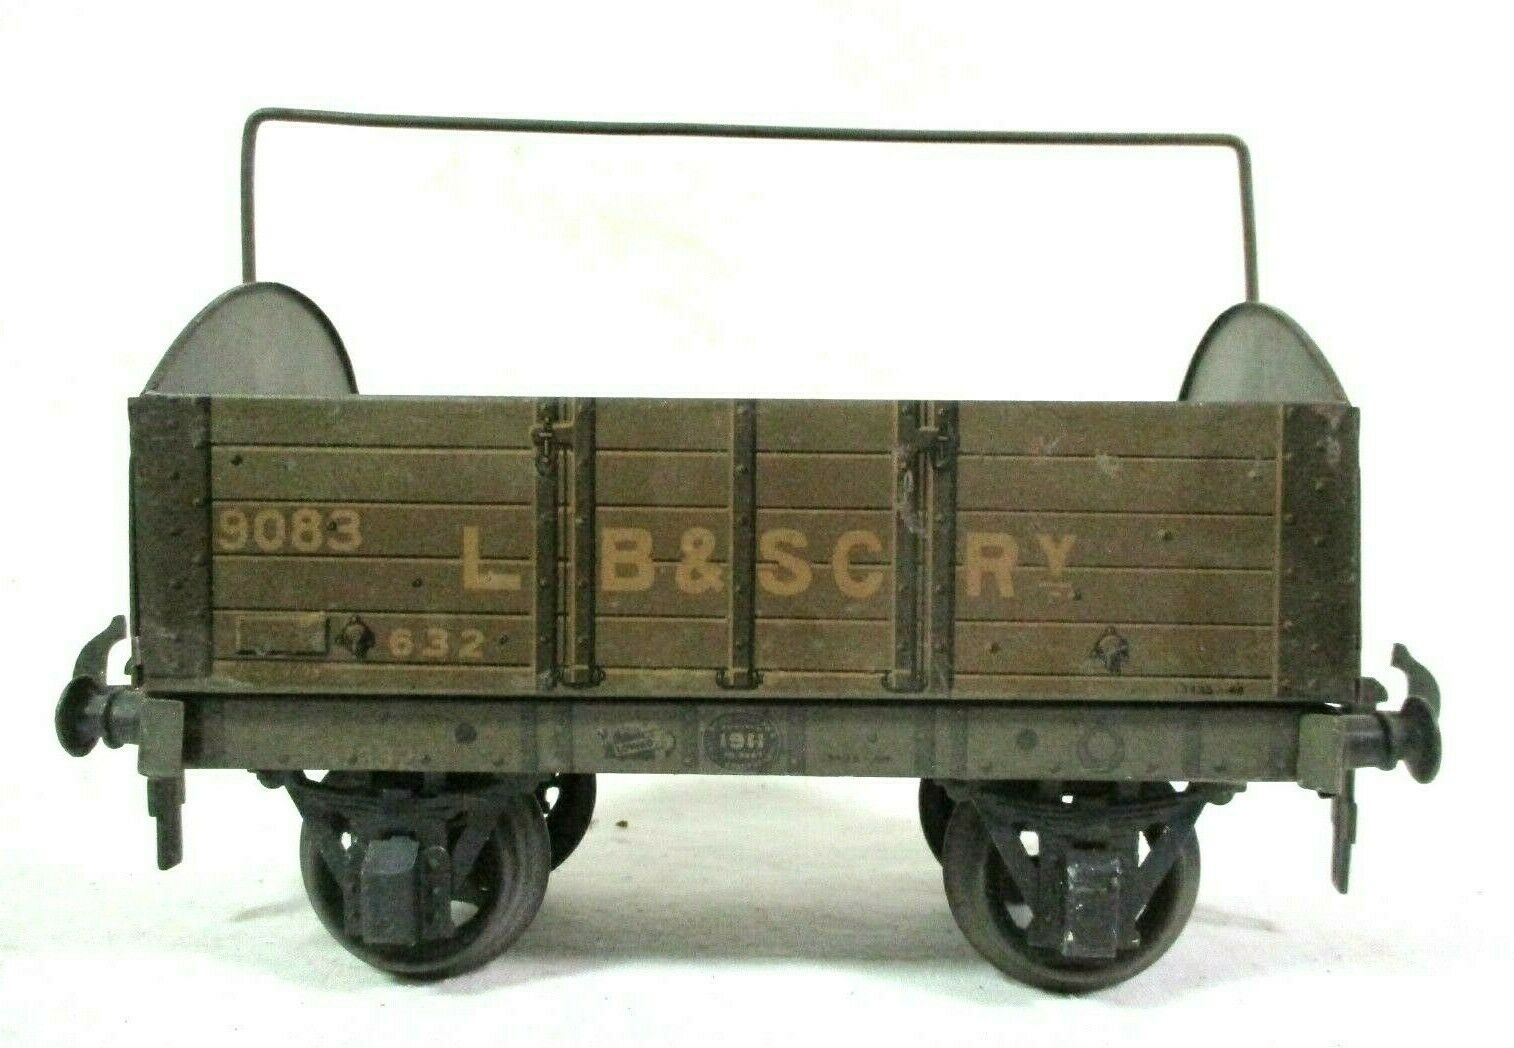 Carette for Bassett Lowke 9083 LB & SCRY Railway 632 1911 Tarpaulin Wagon B63-6